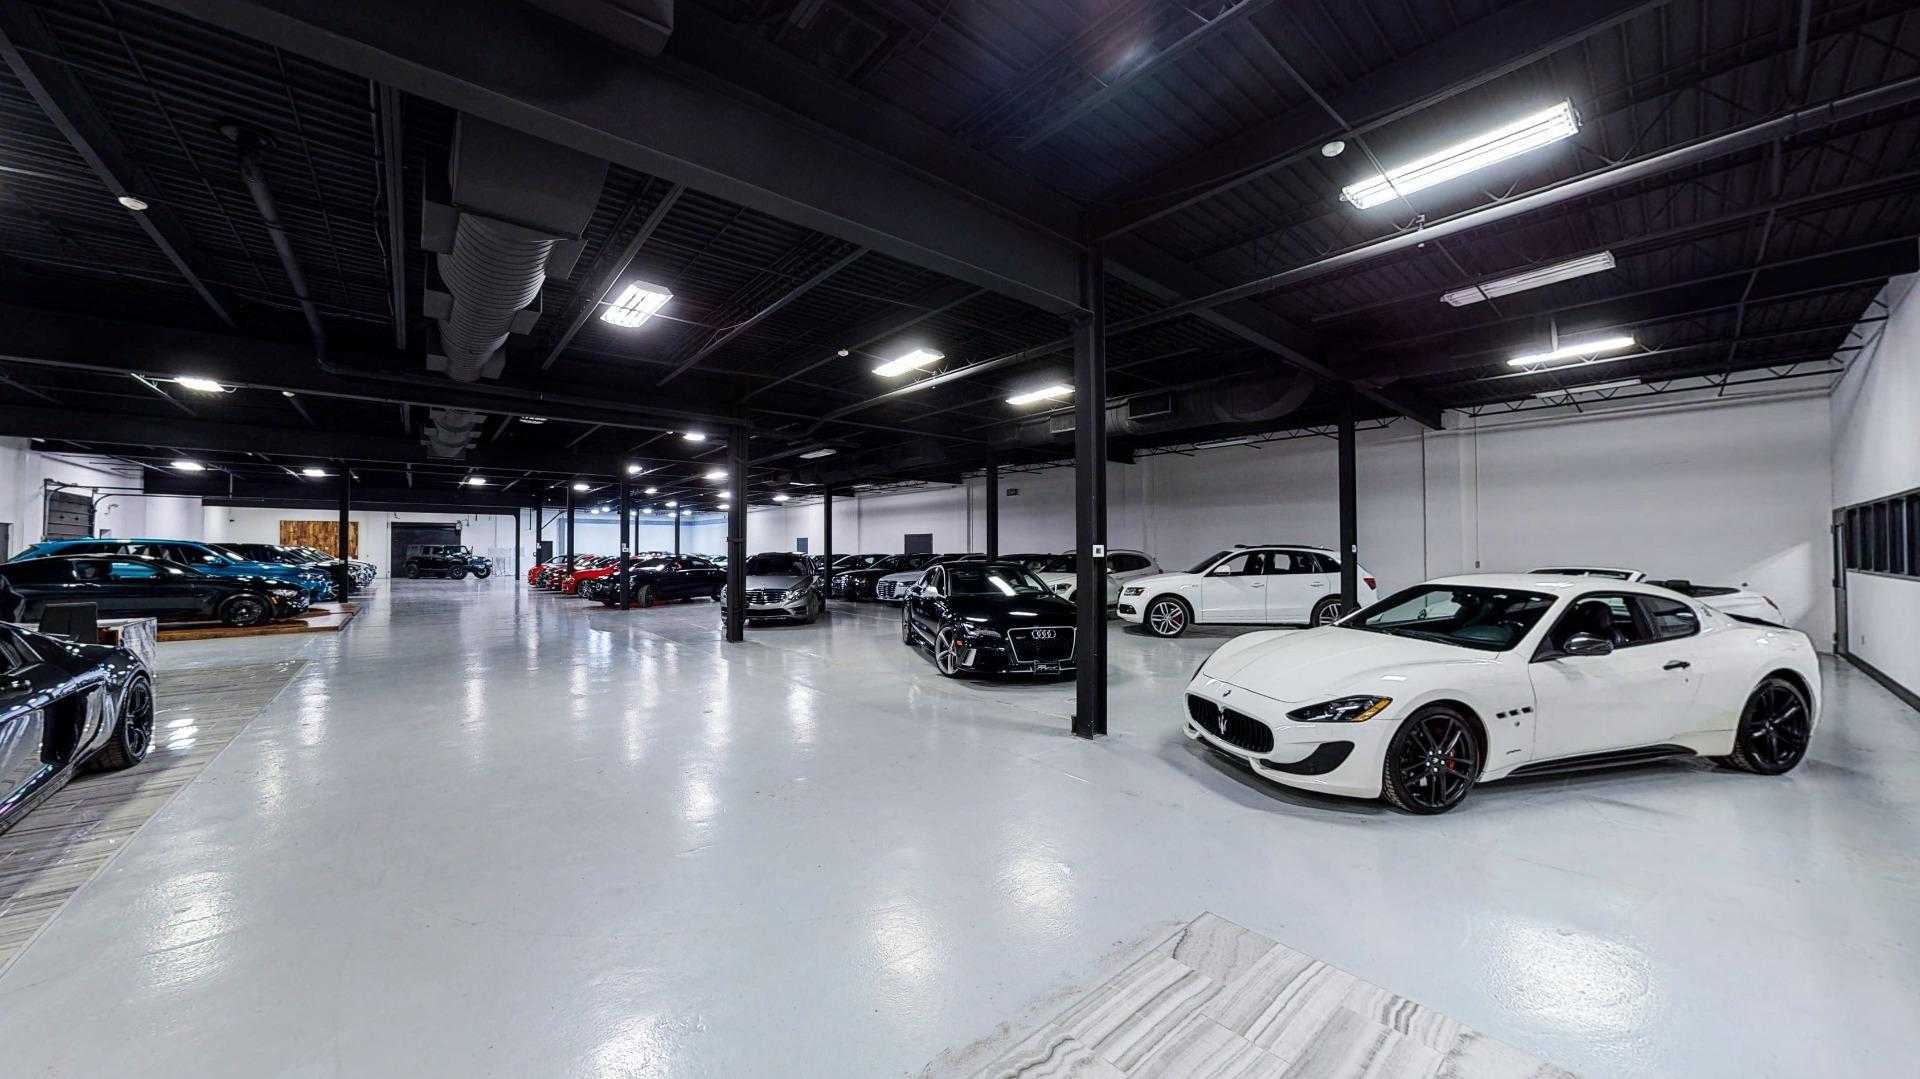 Used 2011 Maserati GranTurismo for sale Sold at Perfect Auto Collection in Akron OH 44310 2